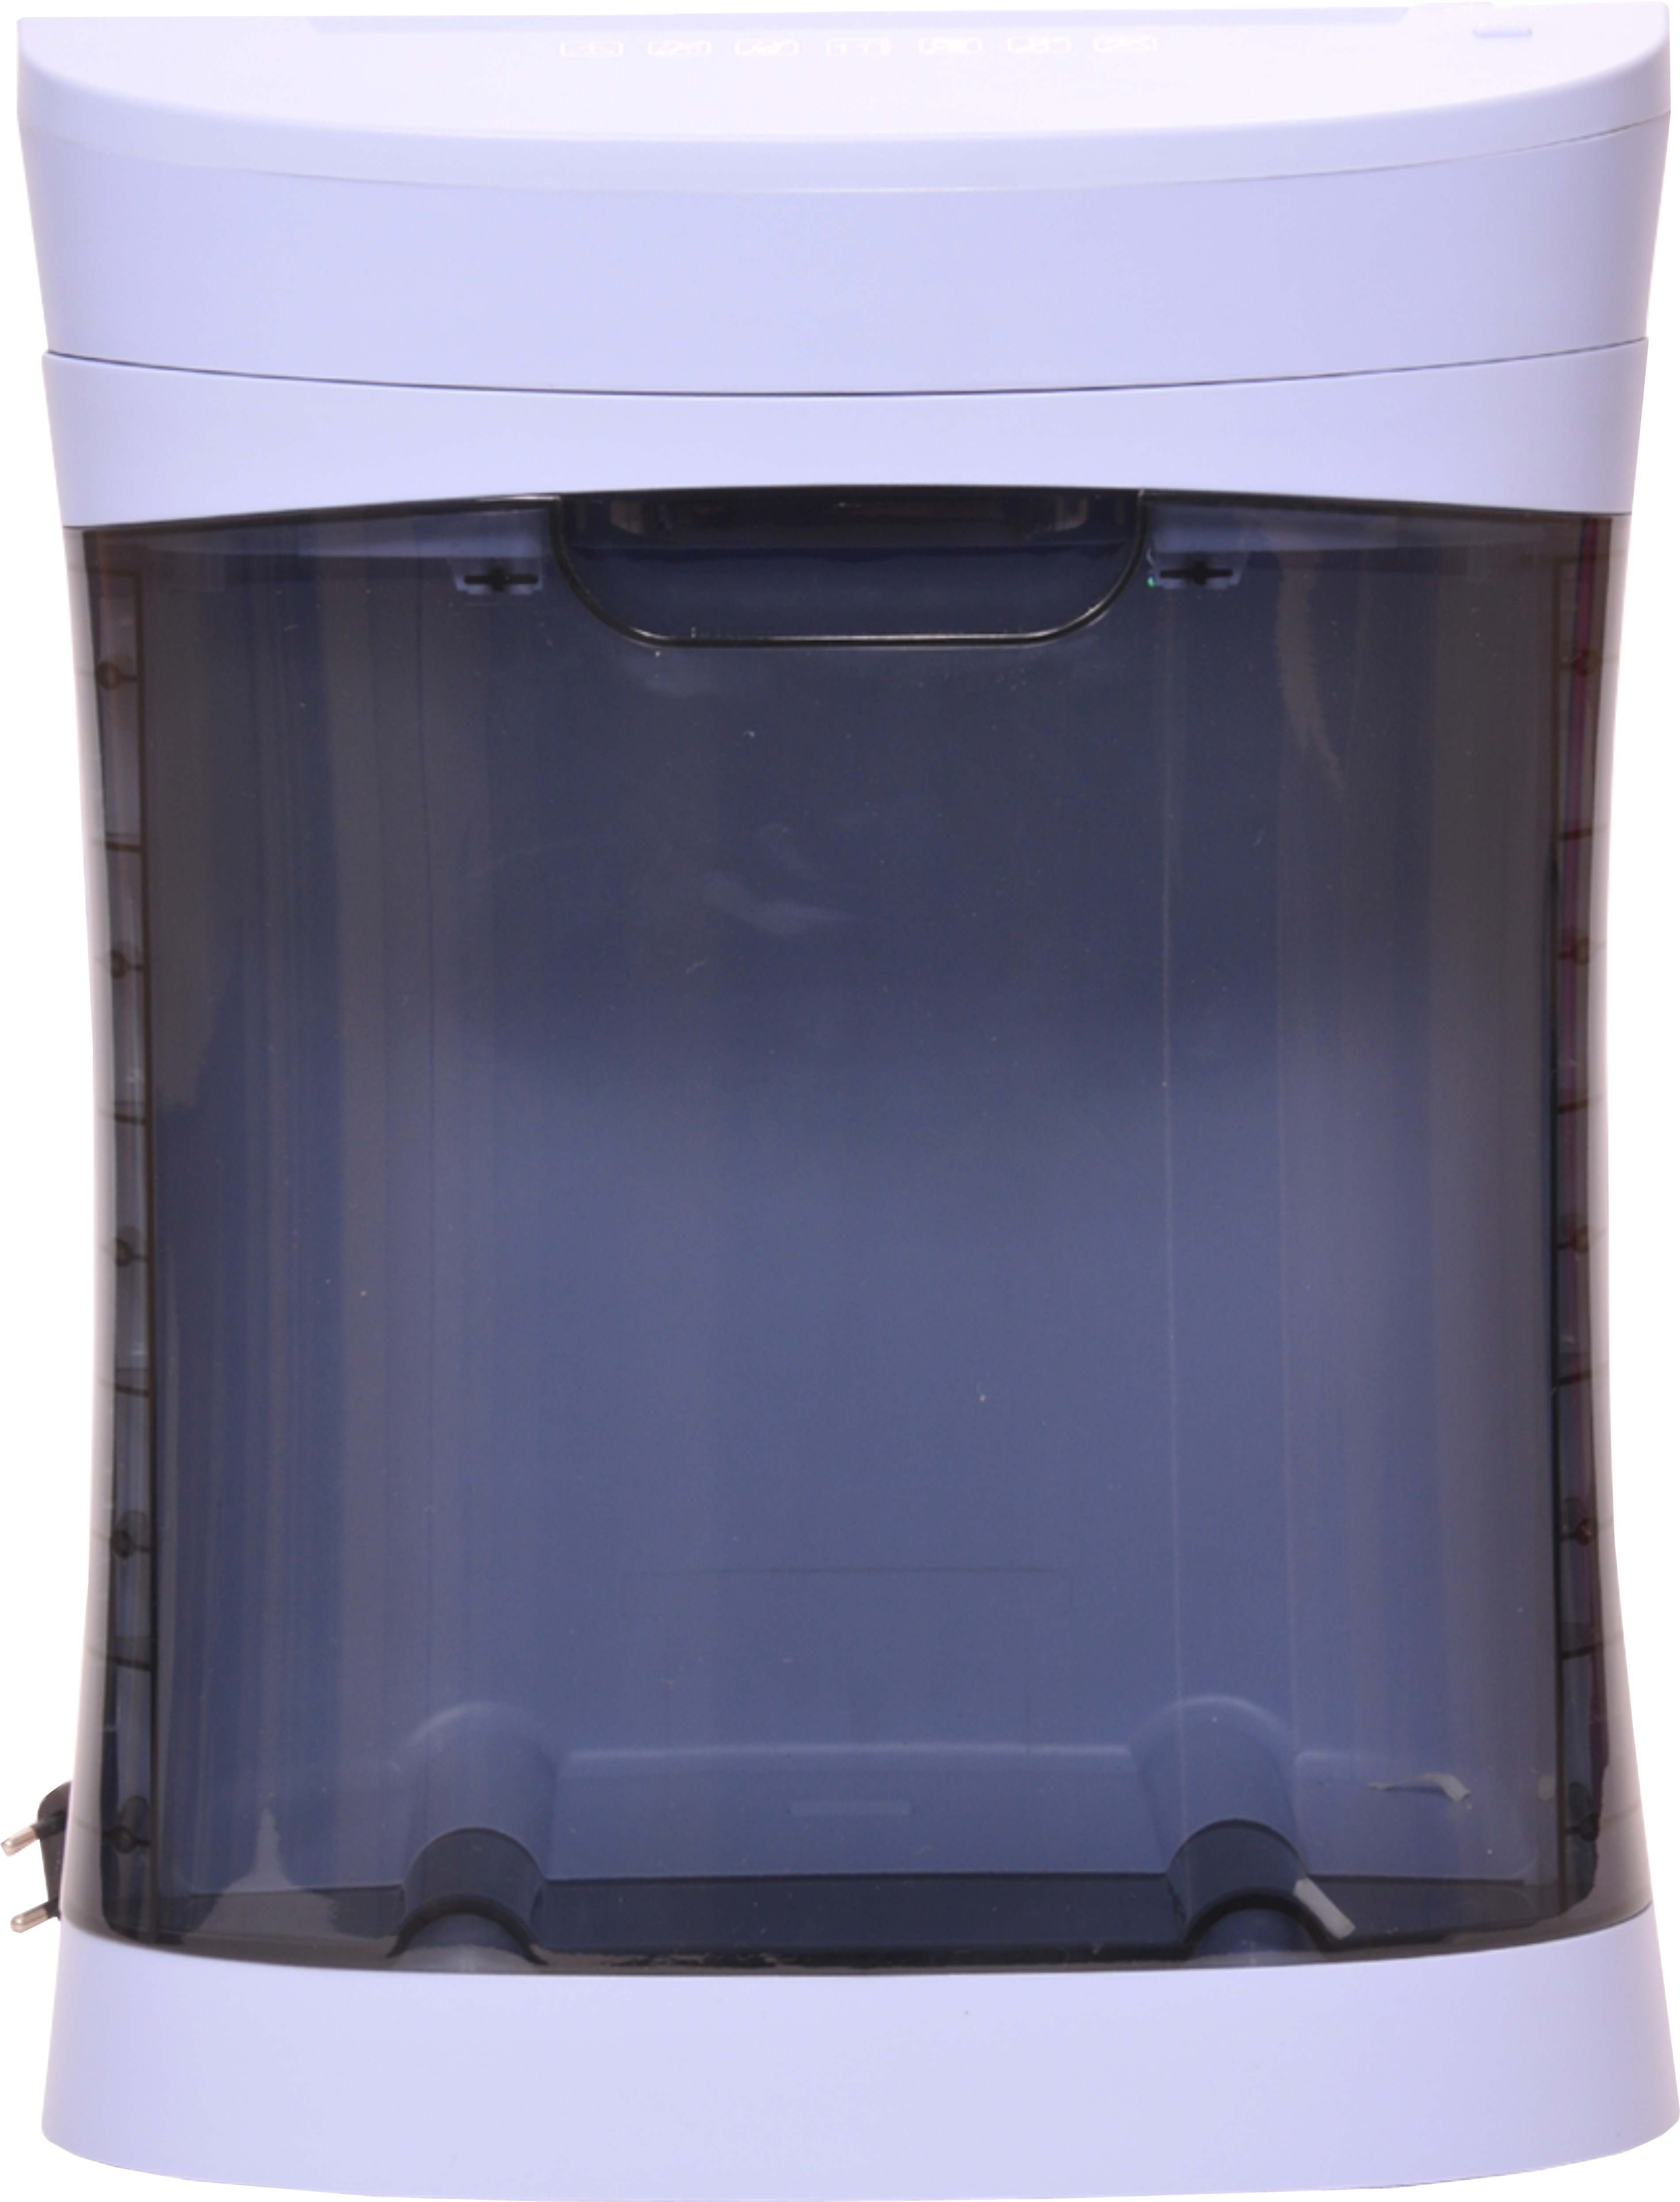 where to buy a paper shredder Paper shredder - 1375 results from brands hsm, fellowes, dahle, products like fellowes r) ps-12cs 12-sheet cross-cut shredder, goecolife gxc140ti 14 sheet cross cut.